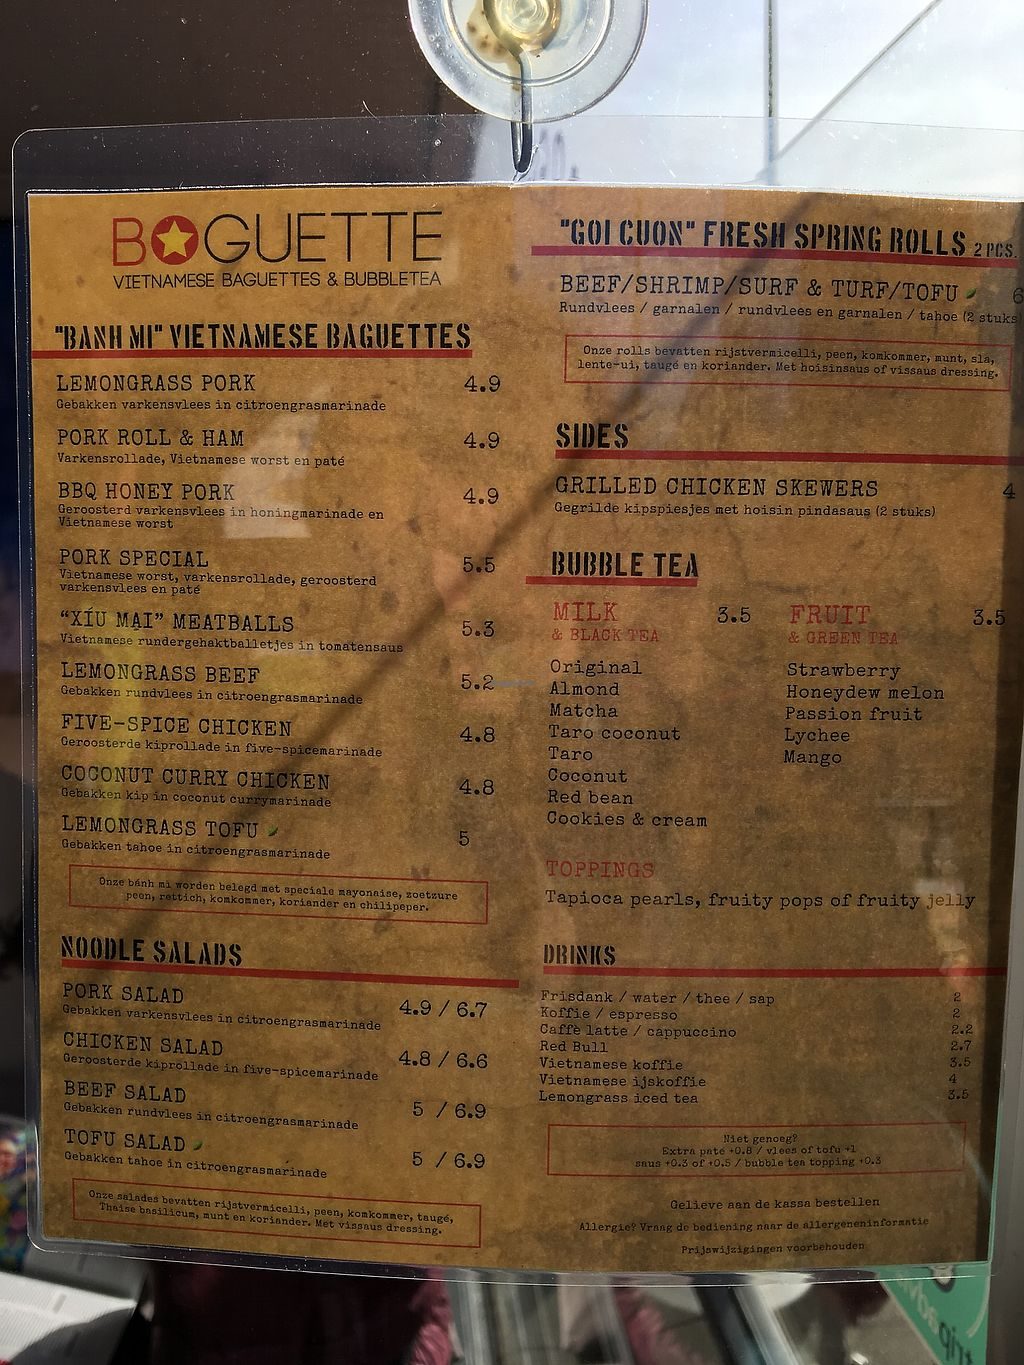 """Photo of Boguette  by <a href=""""/members/profile/Marianne1967"""">Marianne1967</a> <br/>Menu March 2018 <br/> March 4, 2018  - <a href='/contact/abuse/image/72980/366621'>Report</a>"""